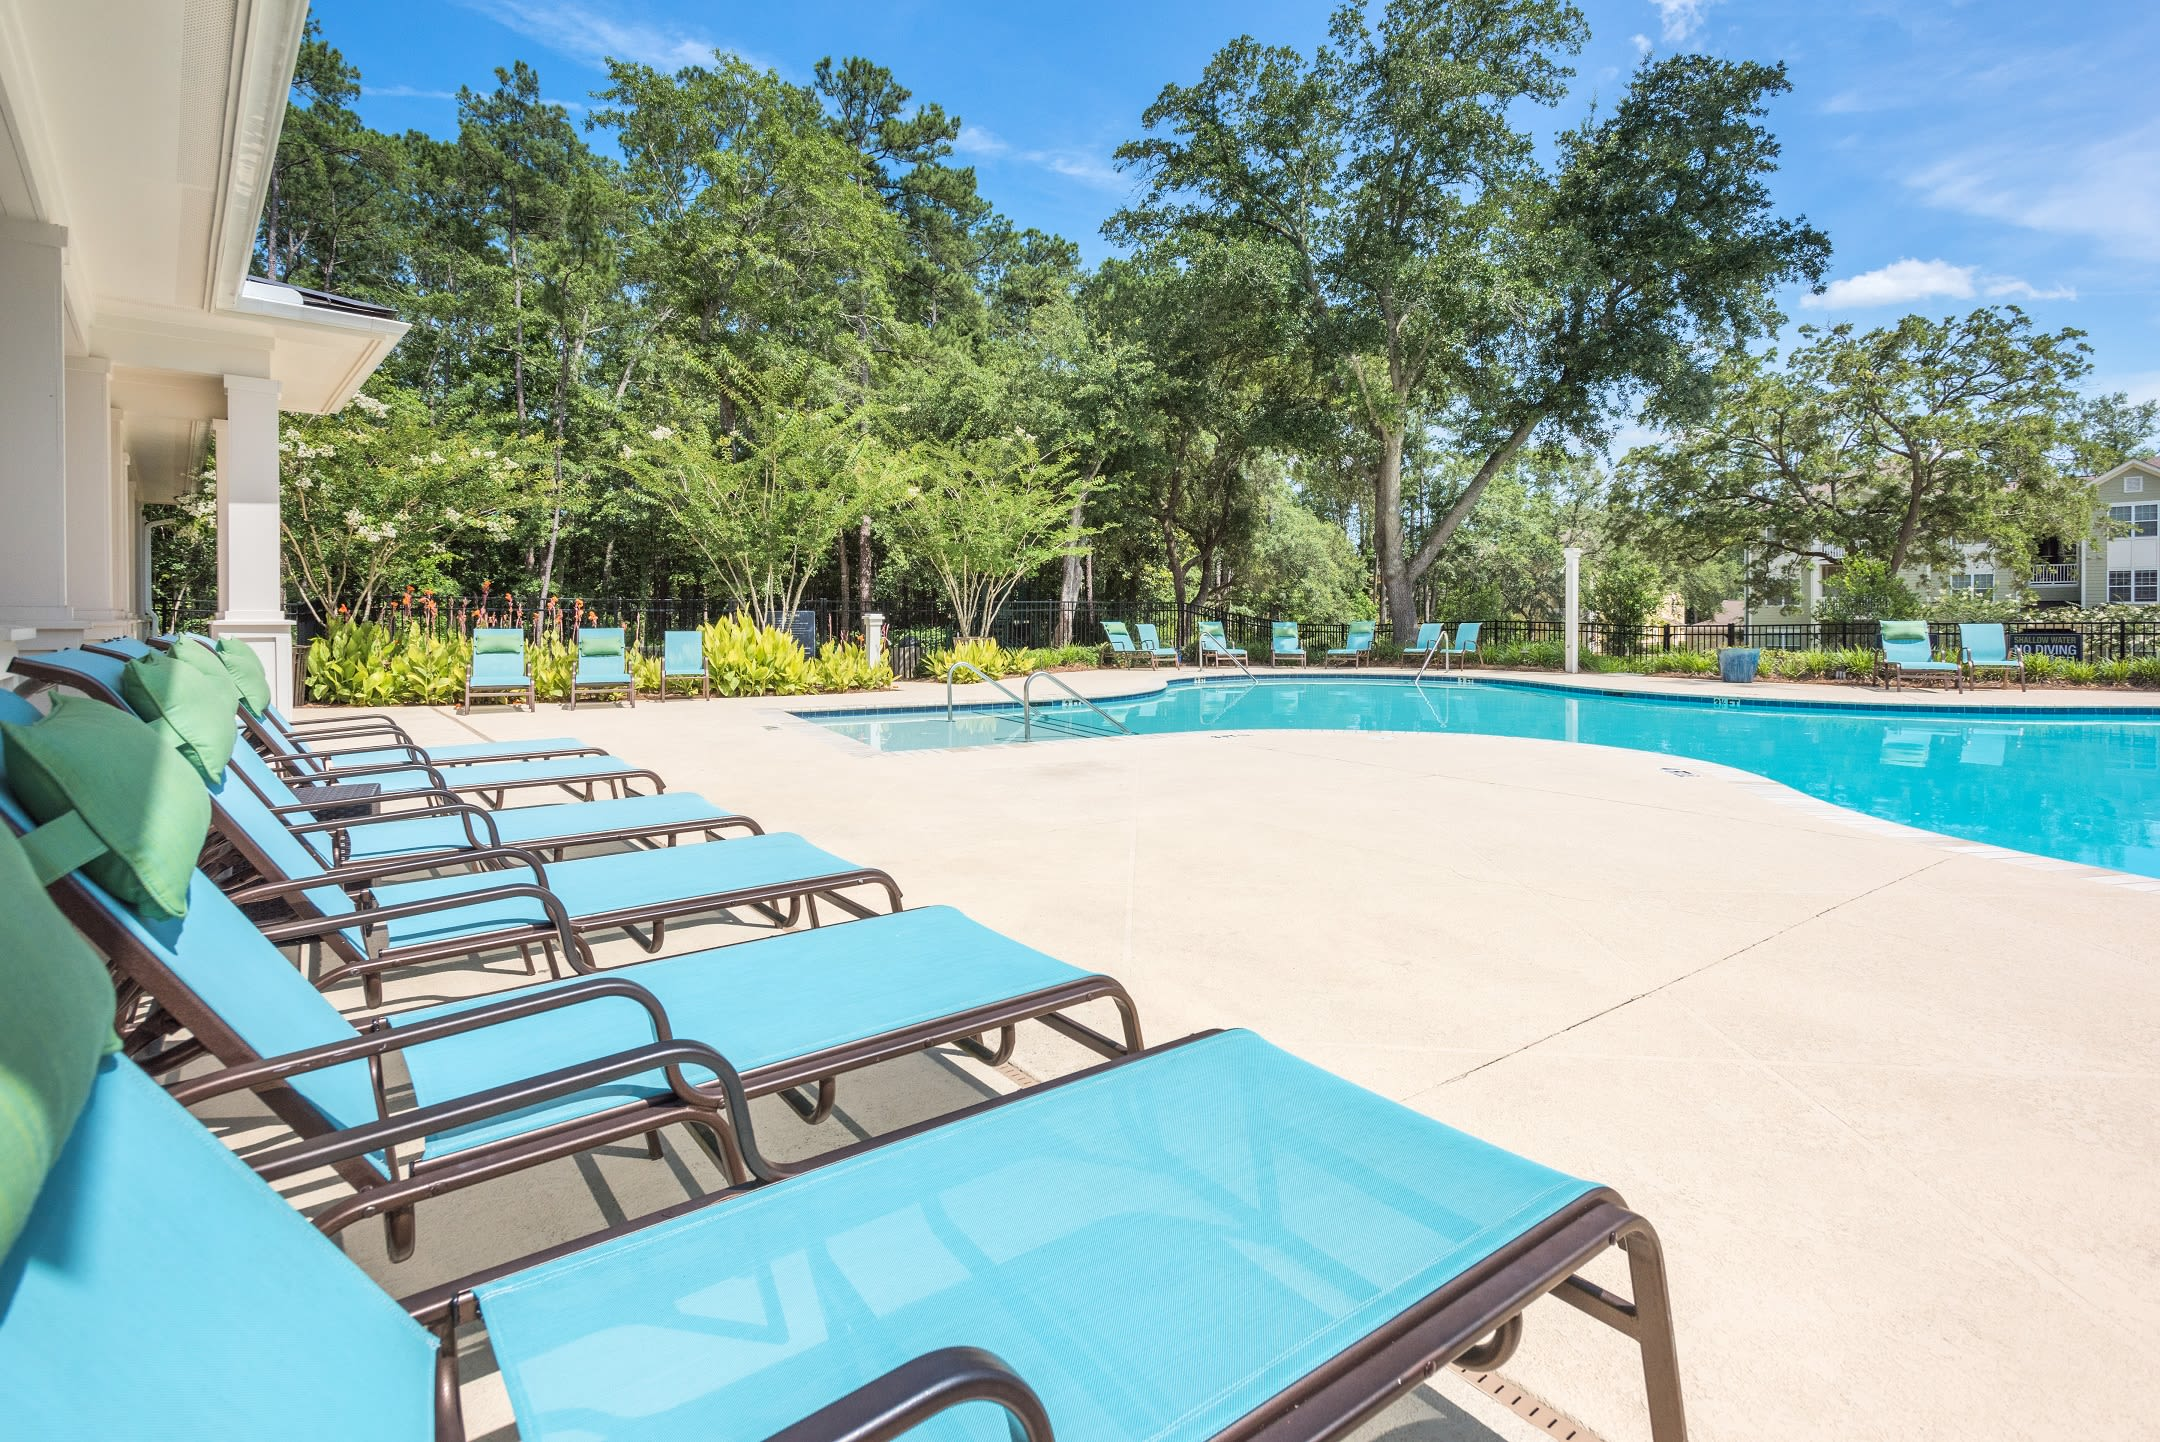 Arbor Village offers a swimming pool with long chair in Summerville, South Carolina